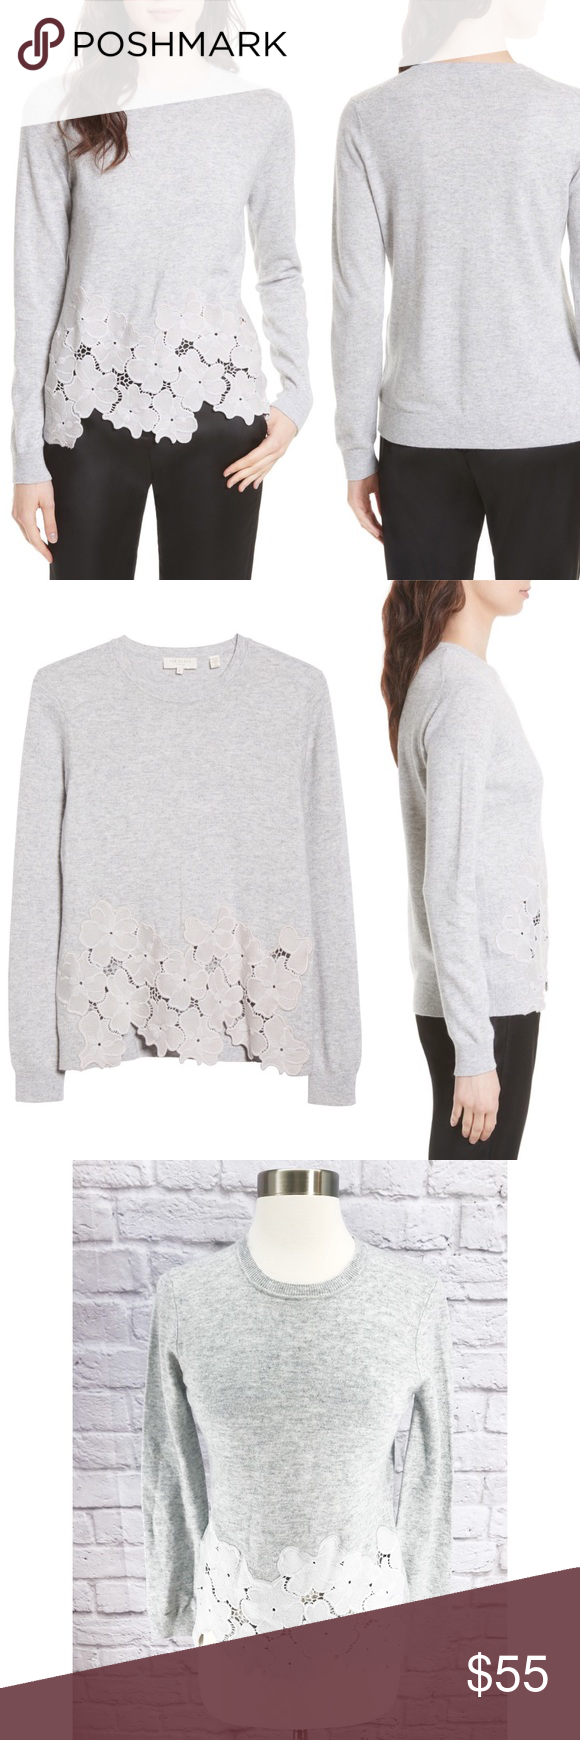 f40a263d0e1b0 •Ted Baker London• Jaya Lace Hem Sweater Gray Excellent Condition! Merino  Wool